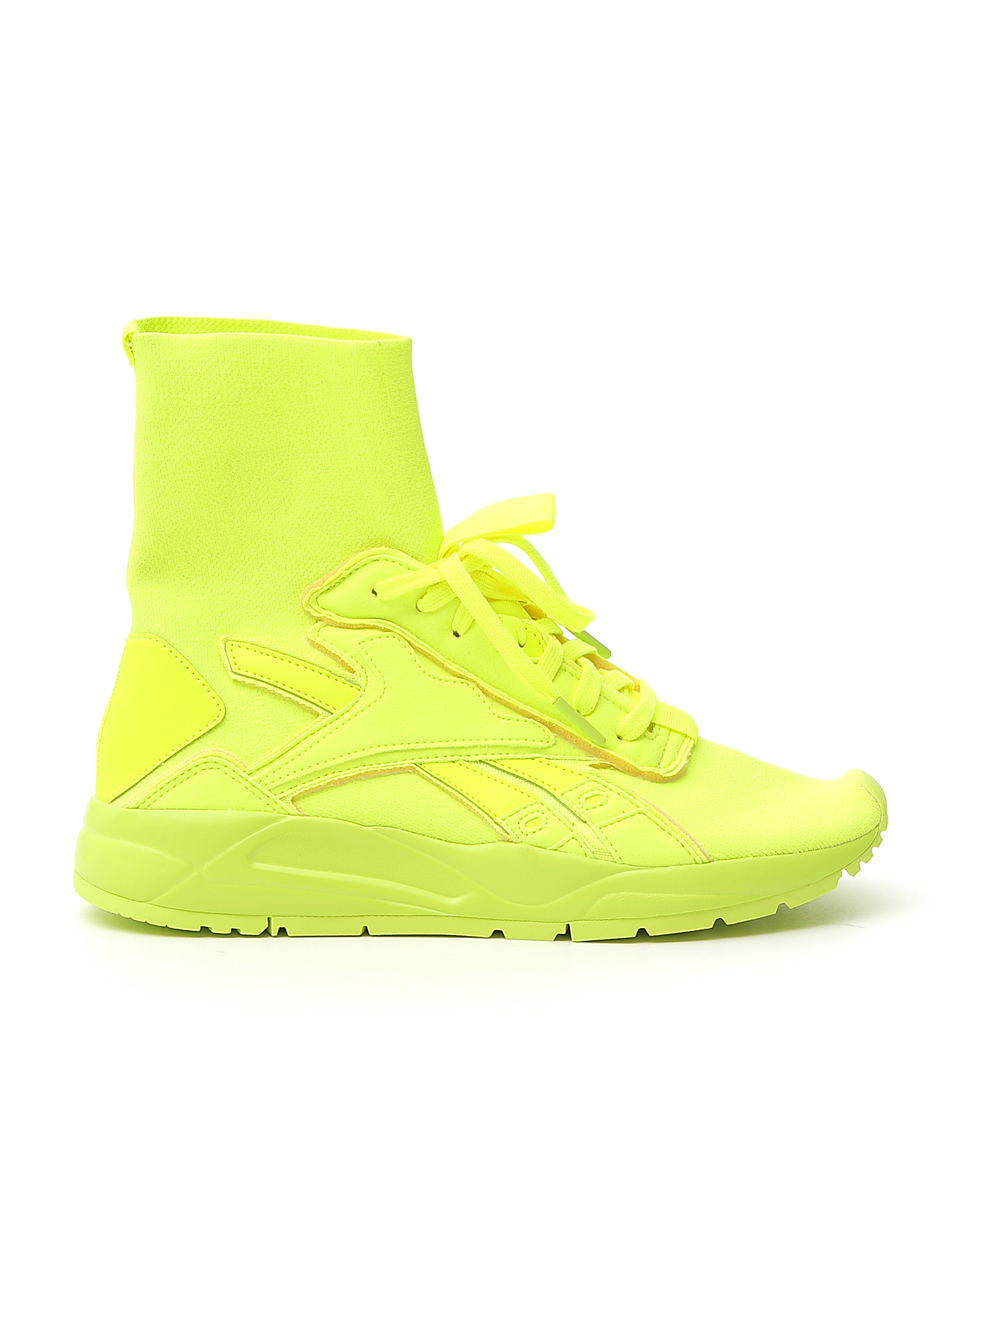 REEBOK x VICTORIA BECKHAM yellow leather hi top sneakers FU7522